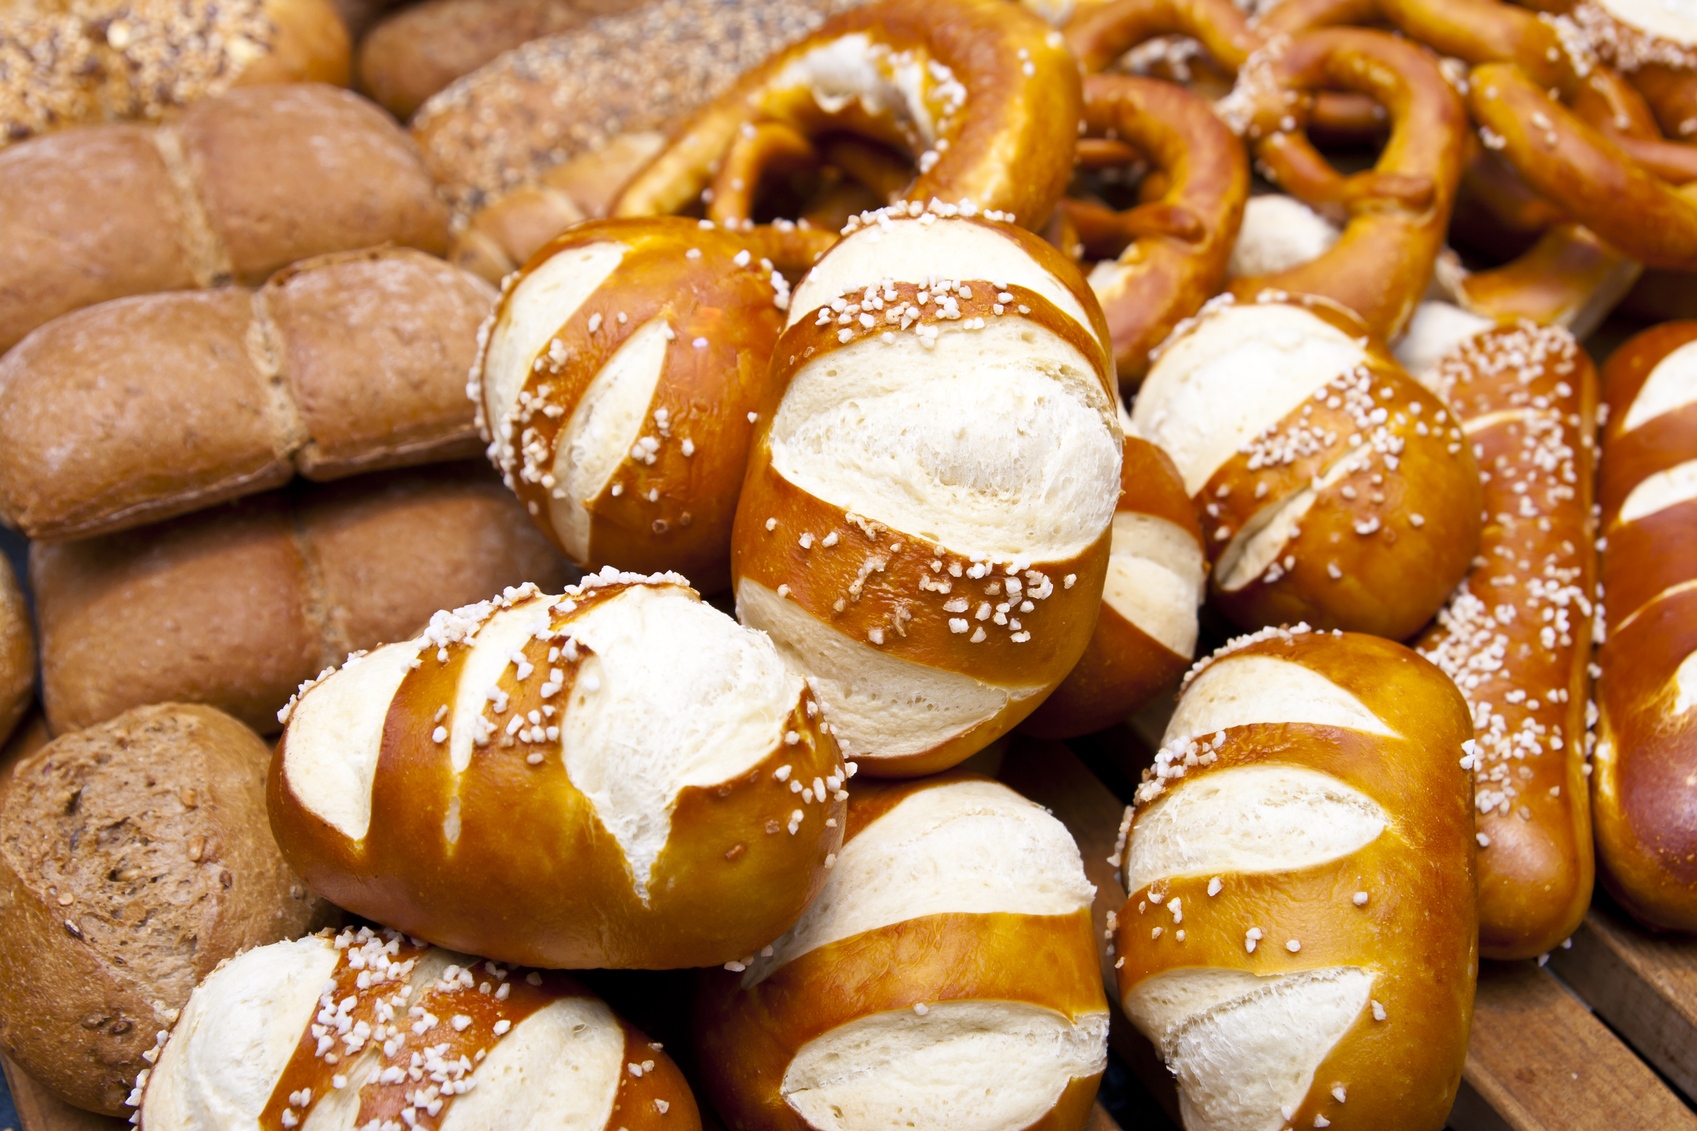 Close-up of salted lye rolls, pretzels and rye buns